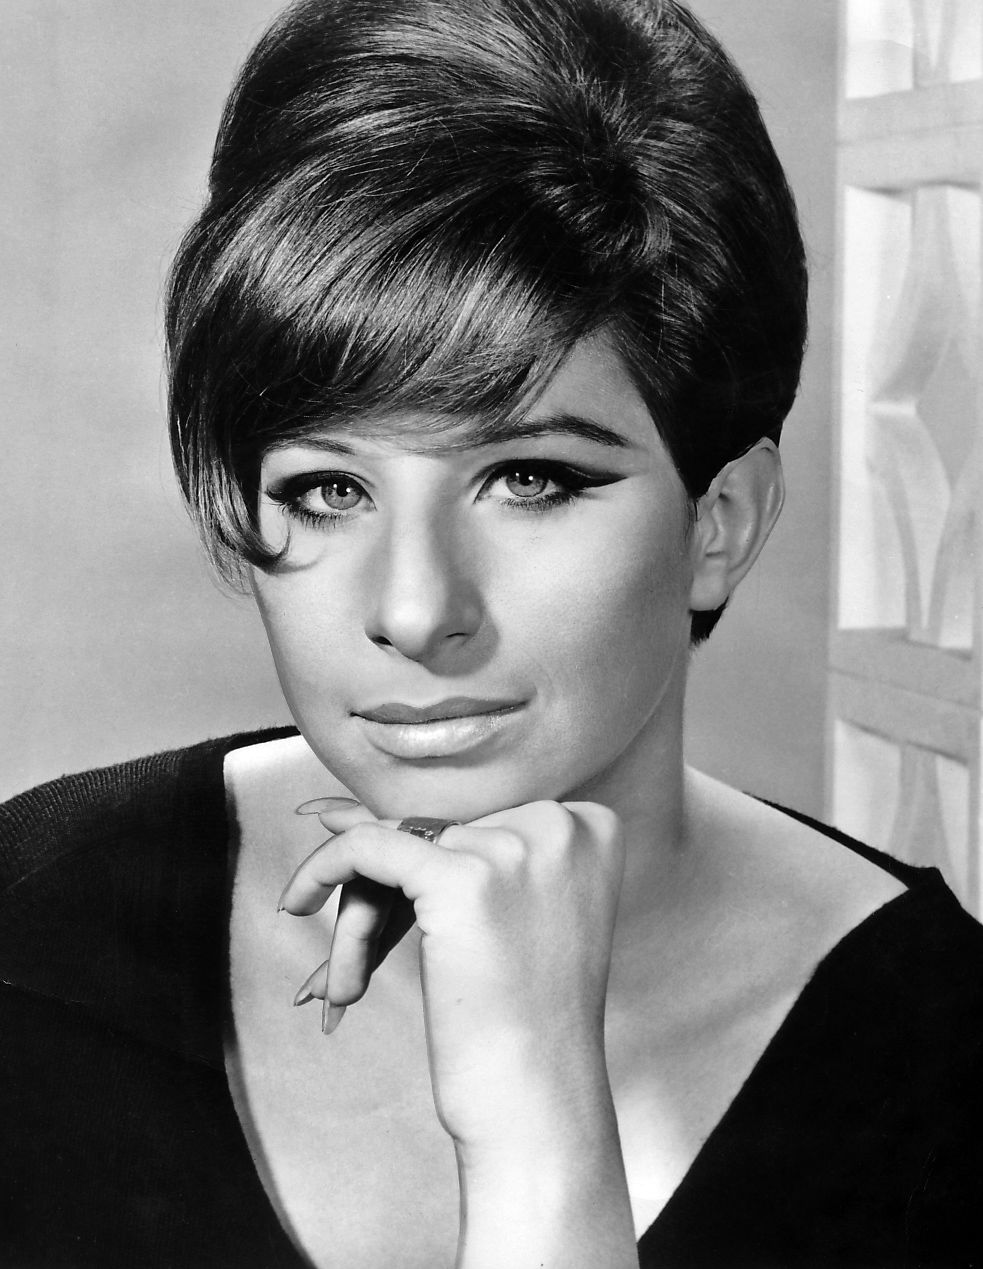 Photo of Barbra Streisand: American singer, actress, writer, film producer, and director